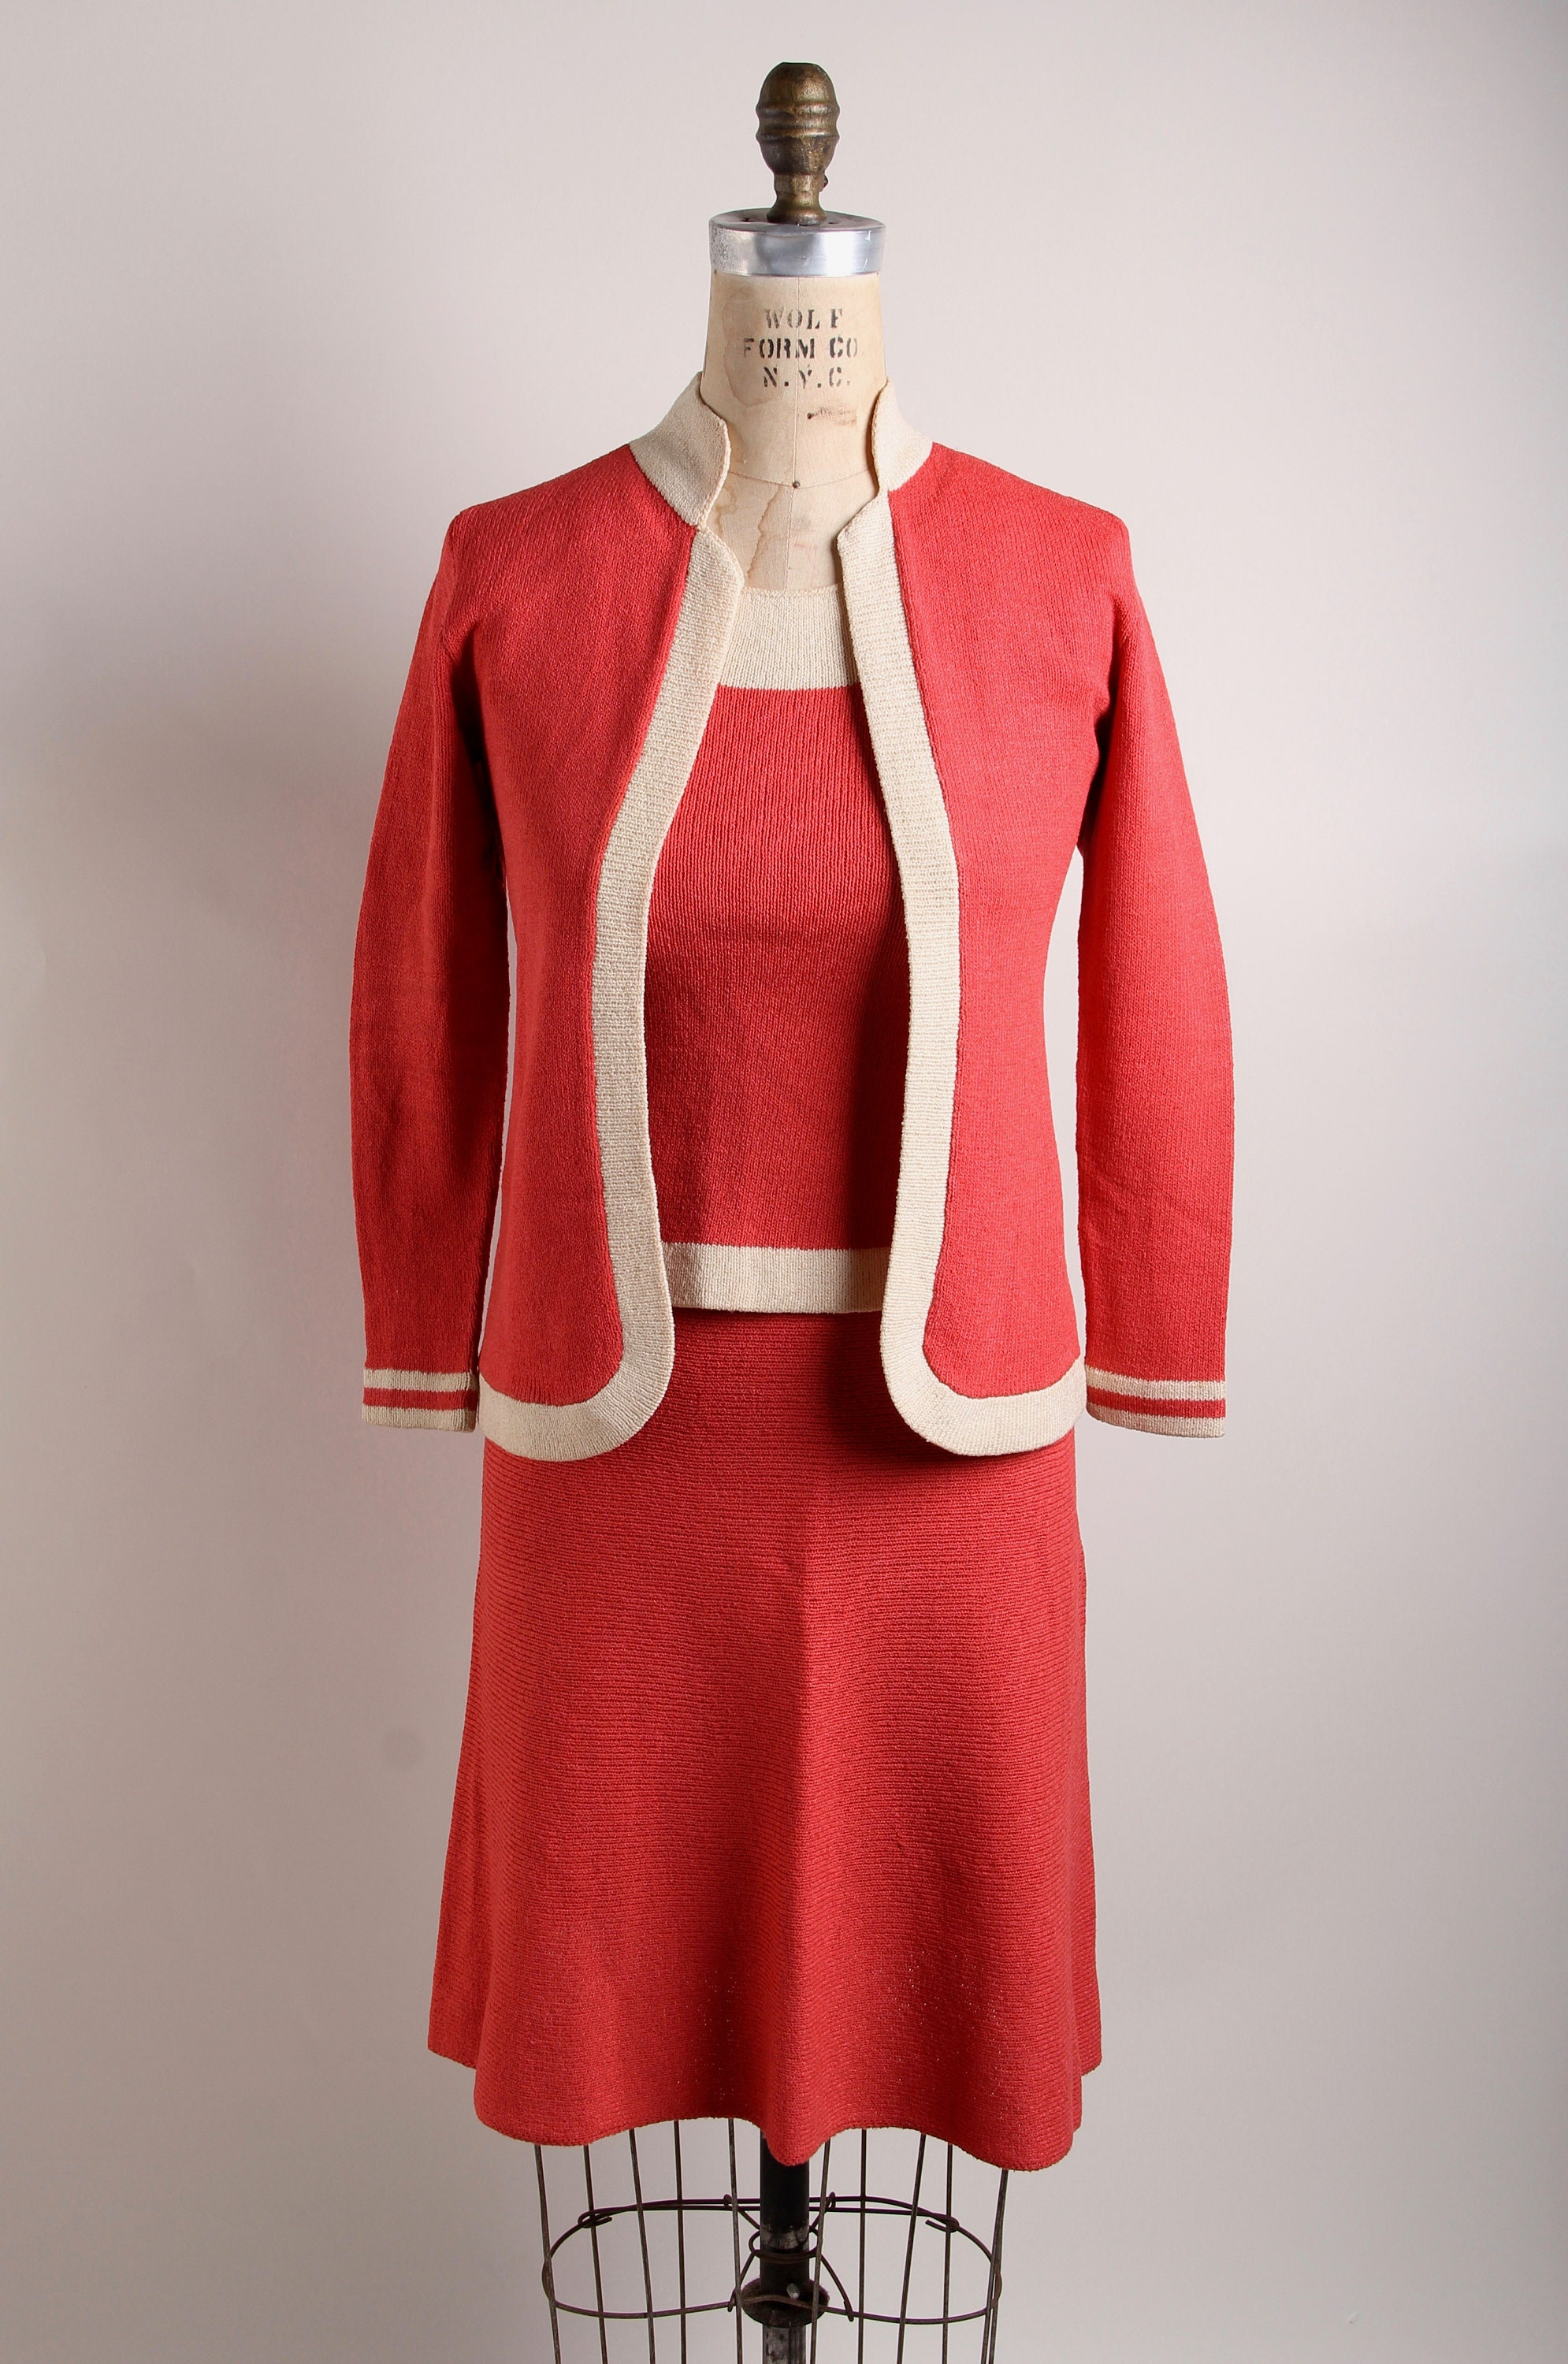 0c5765342d17f Vintage *ADOLFO* 4 piece Coral + Cream knit suit for Saks Fifth avenue,  Size Small, cardigan, skirt, pants, top